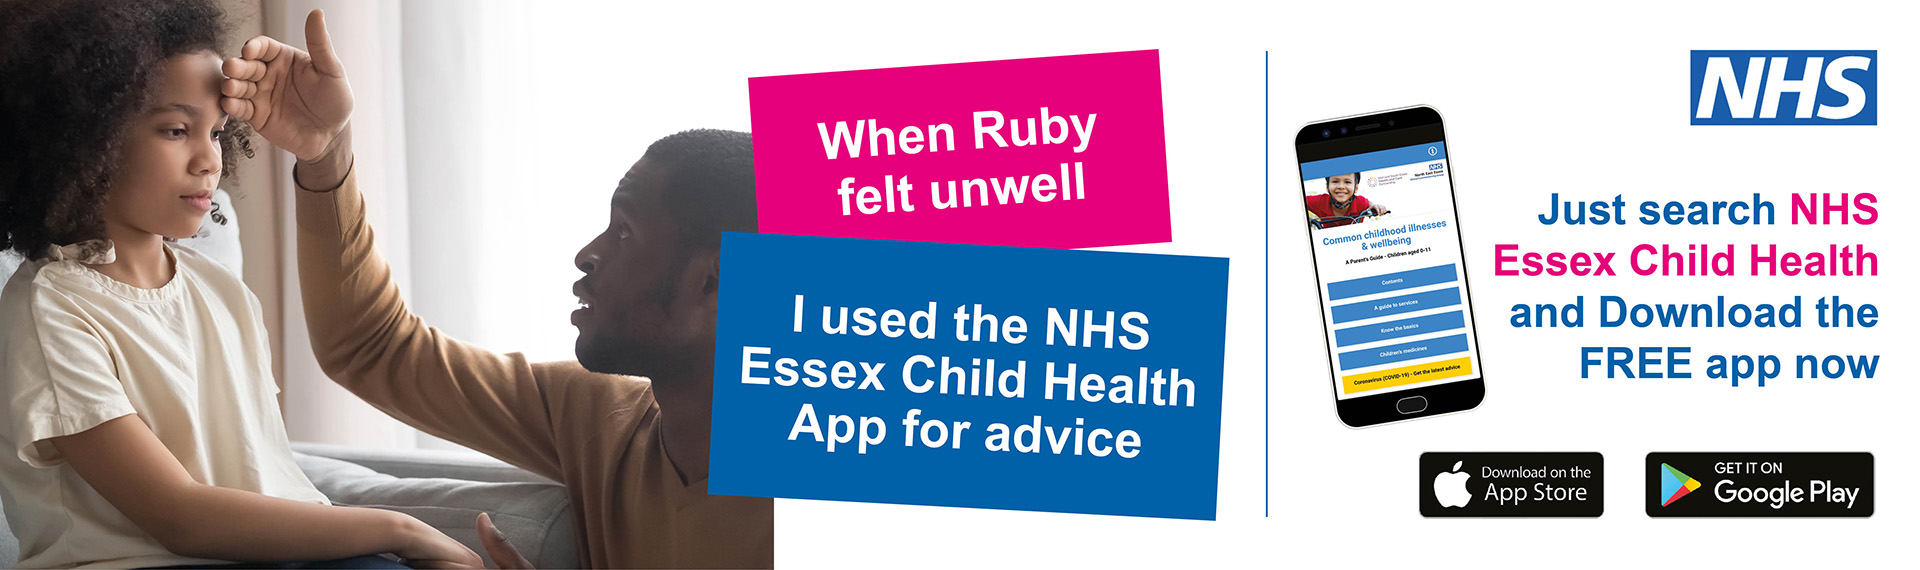 Essex Child Health App